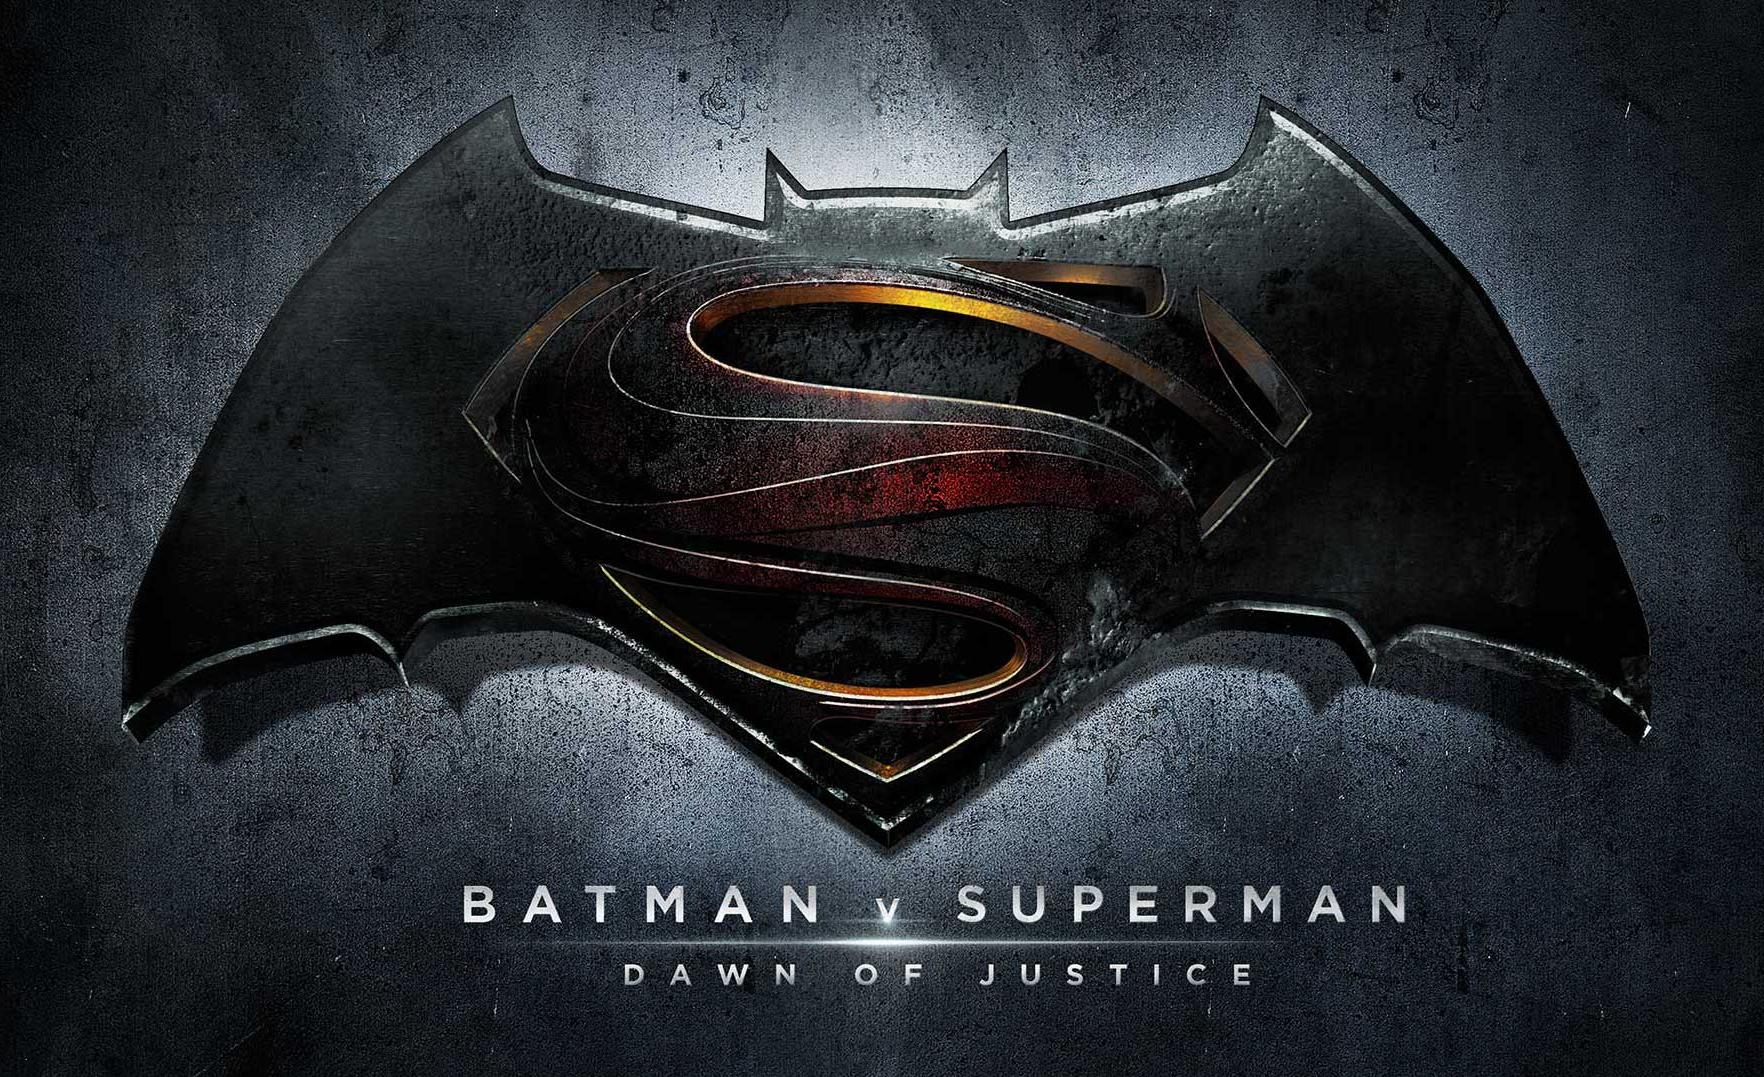 New Batman v Superman: Dawn Of Justice trailer